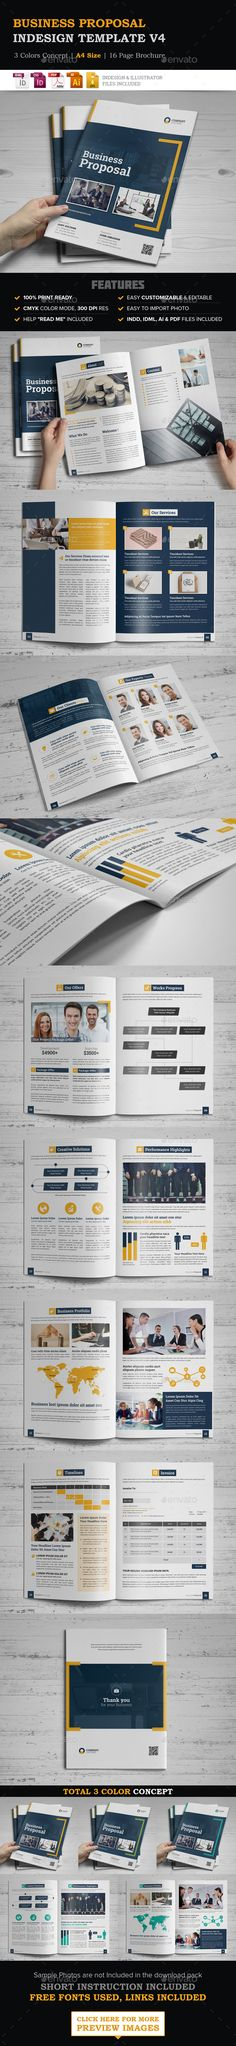 Proposal Proposal templates, Proposals and Project proposal - best proposal templates